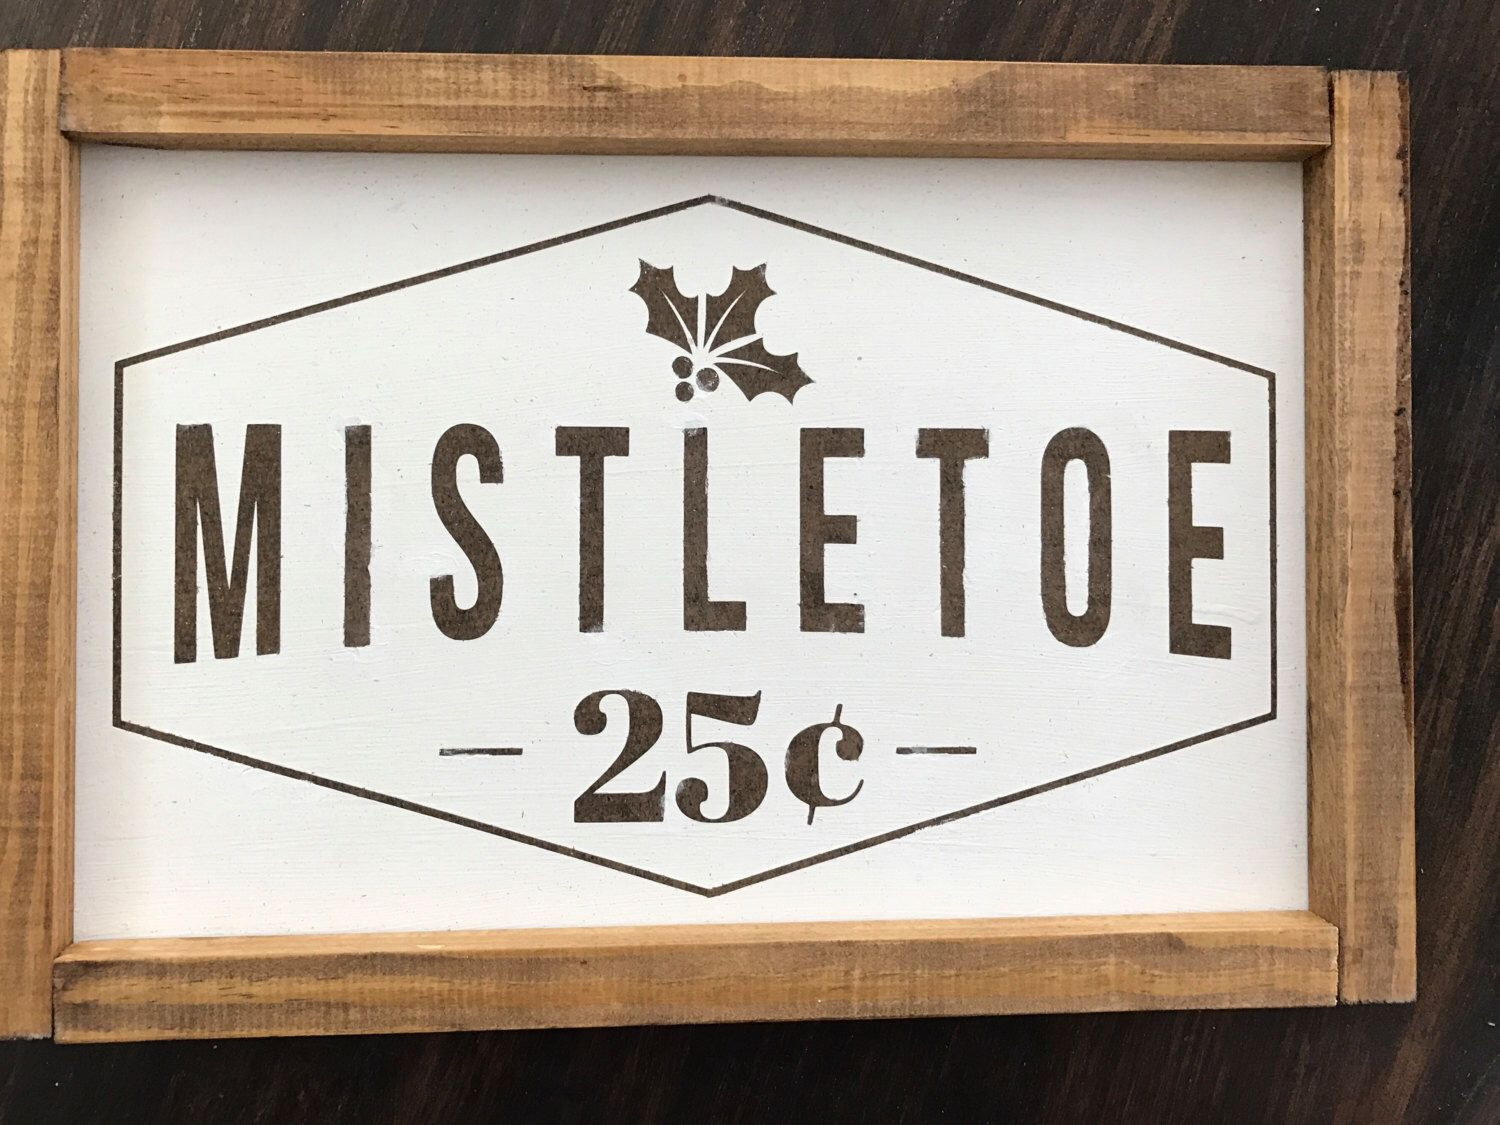 Mistletoe Wood Framr Sign Christmas decor handpainted by TheColoredUmbrella on Etsy https://www.etsy.com/listing/497990637/mistletoe-wood-framr-sign-christmas